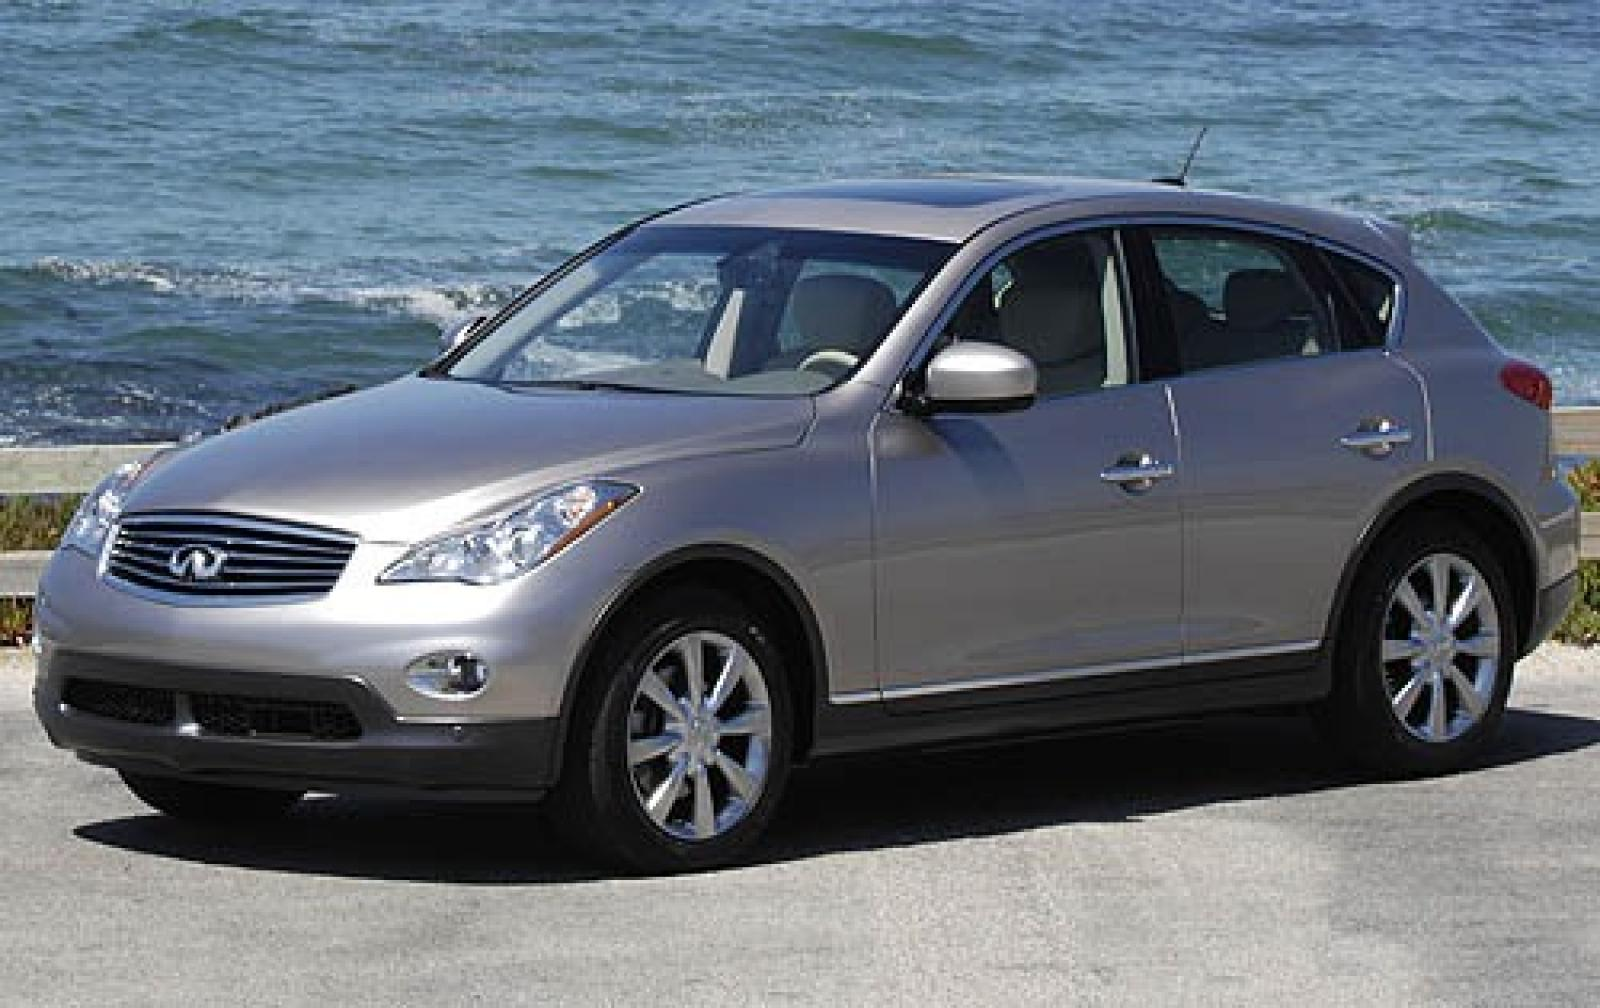 2008 Infiniti Ex35 Information And Photos Zombiedrive Remote For Q45 Starter Gallery